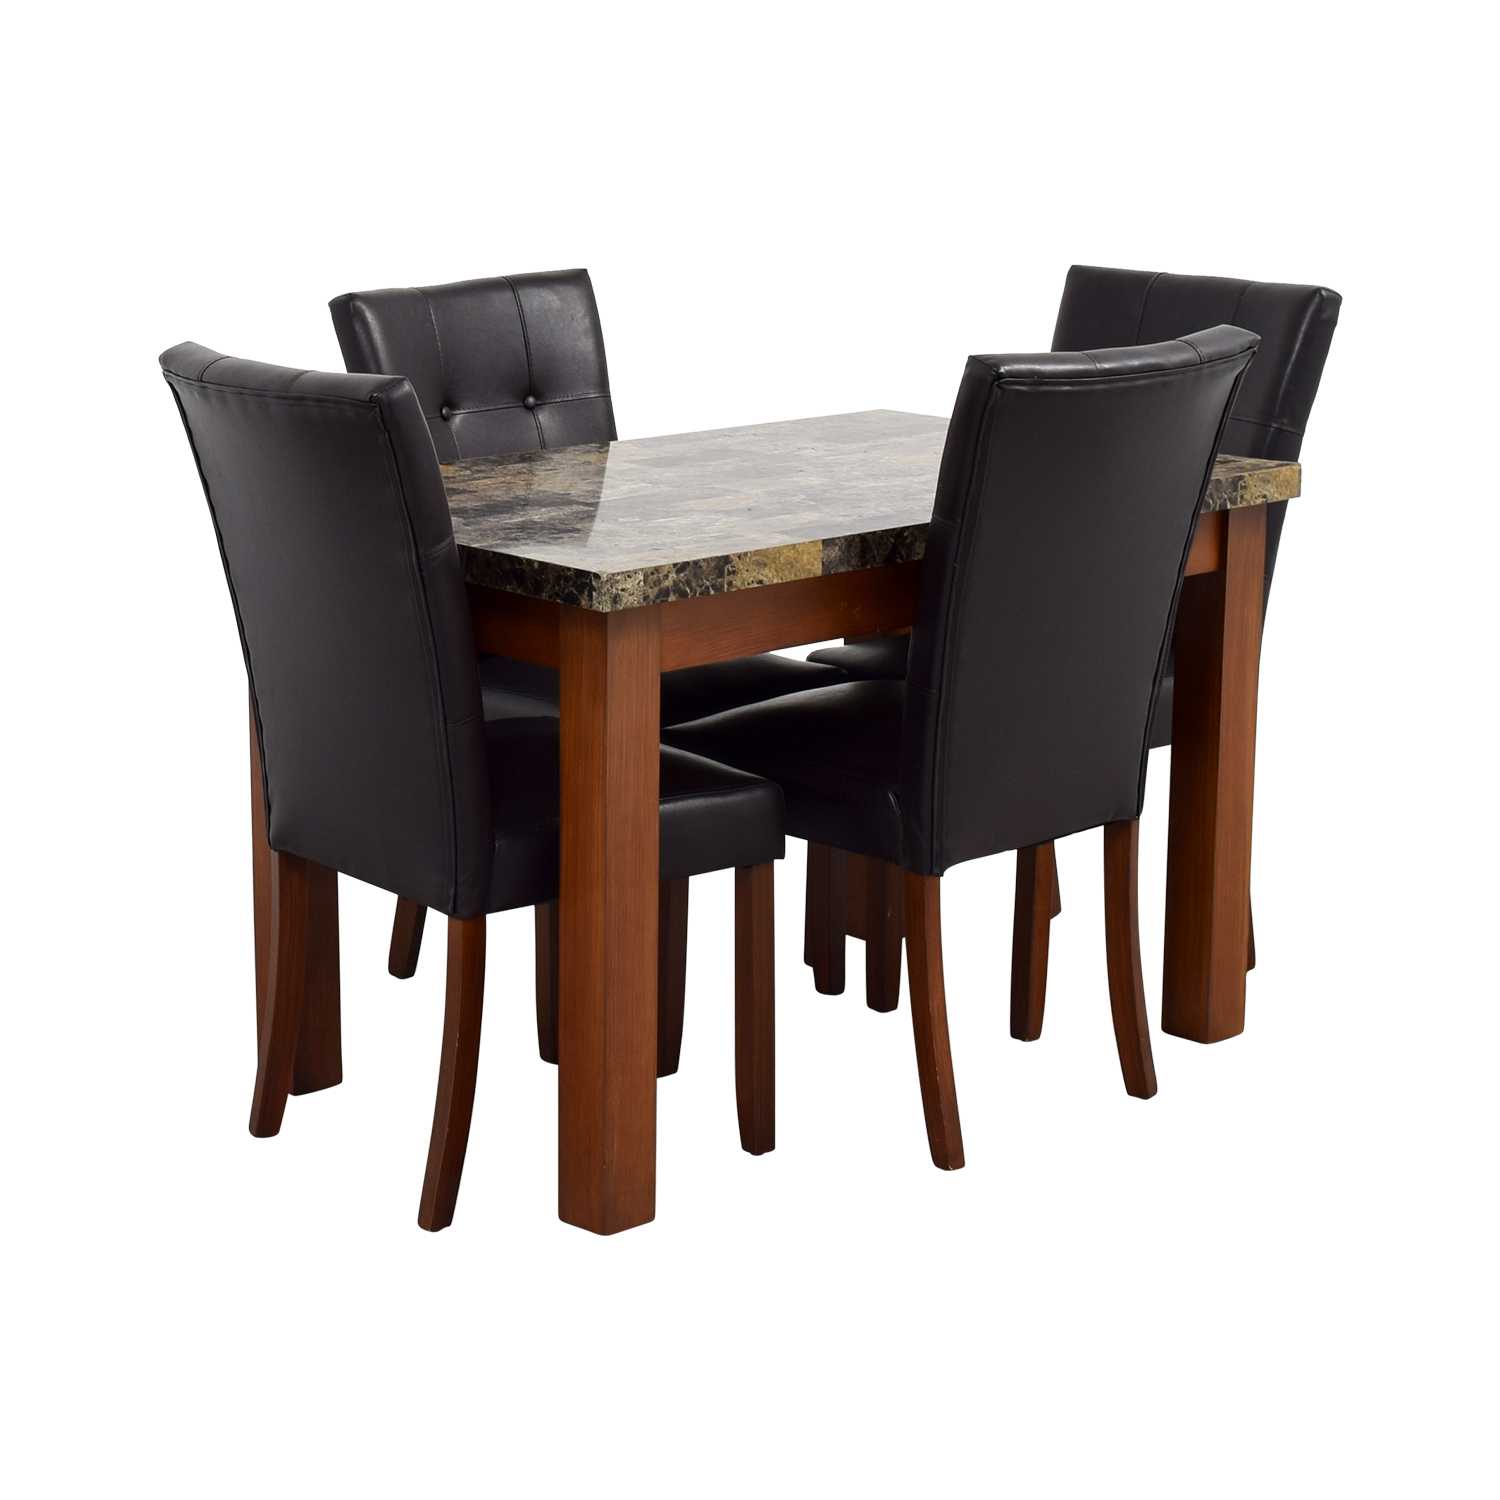 40% OFF Faux Marble Dining Table with Brown Tufted Leather